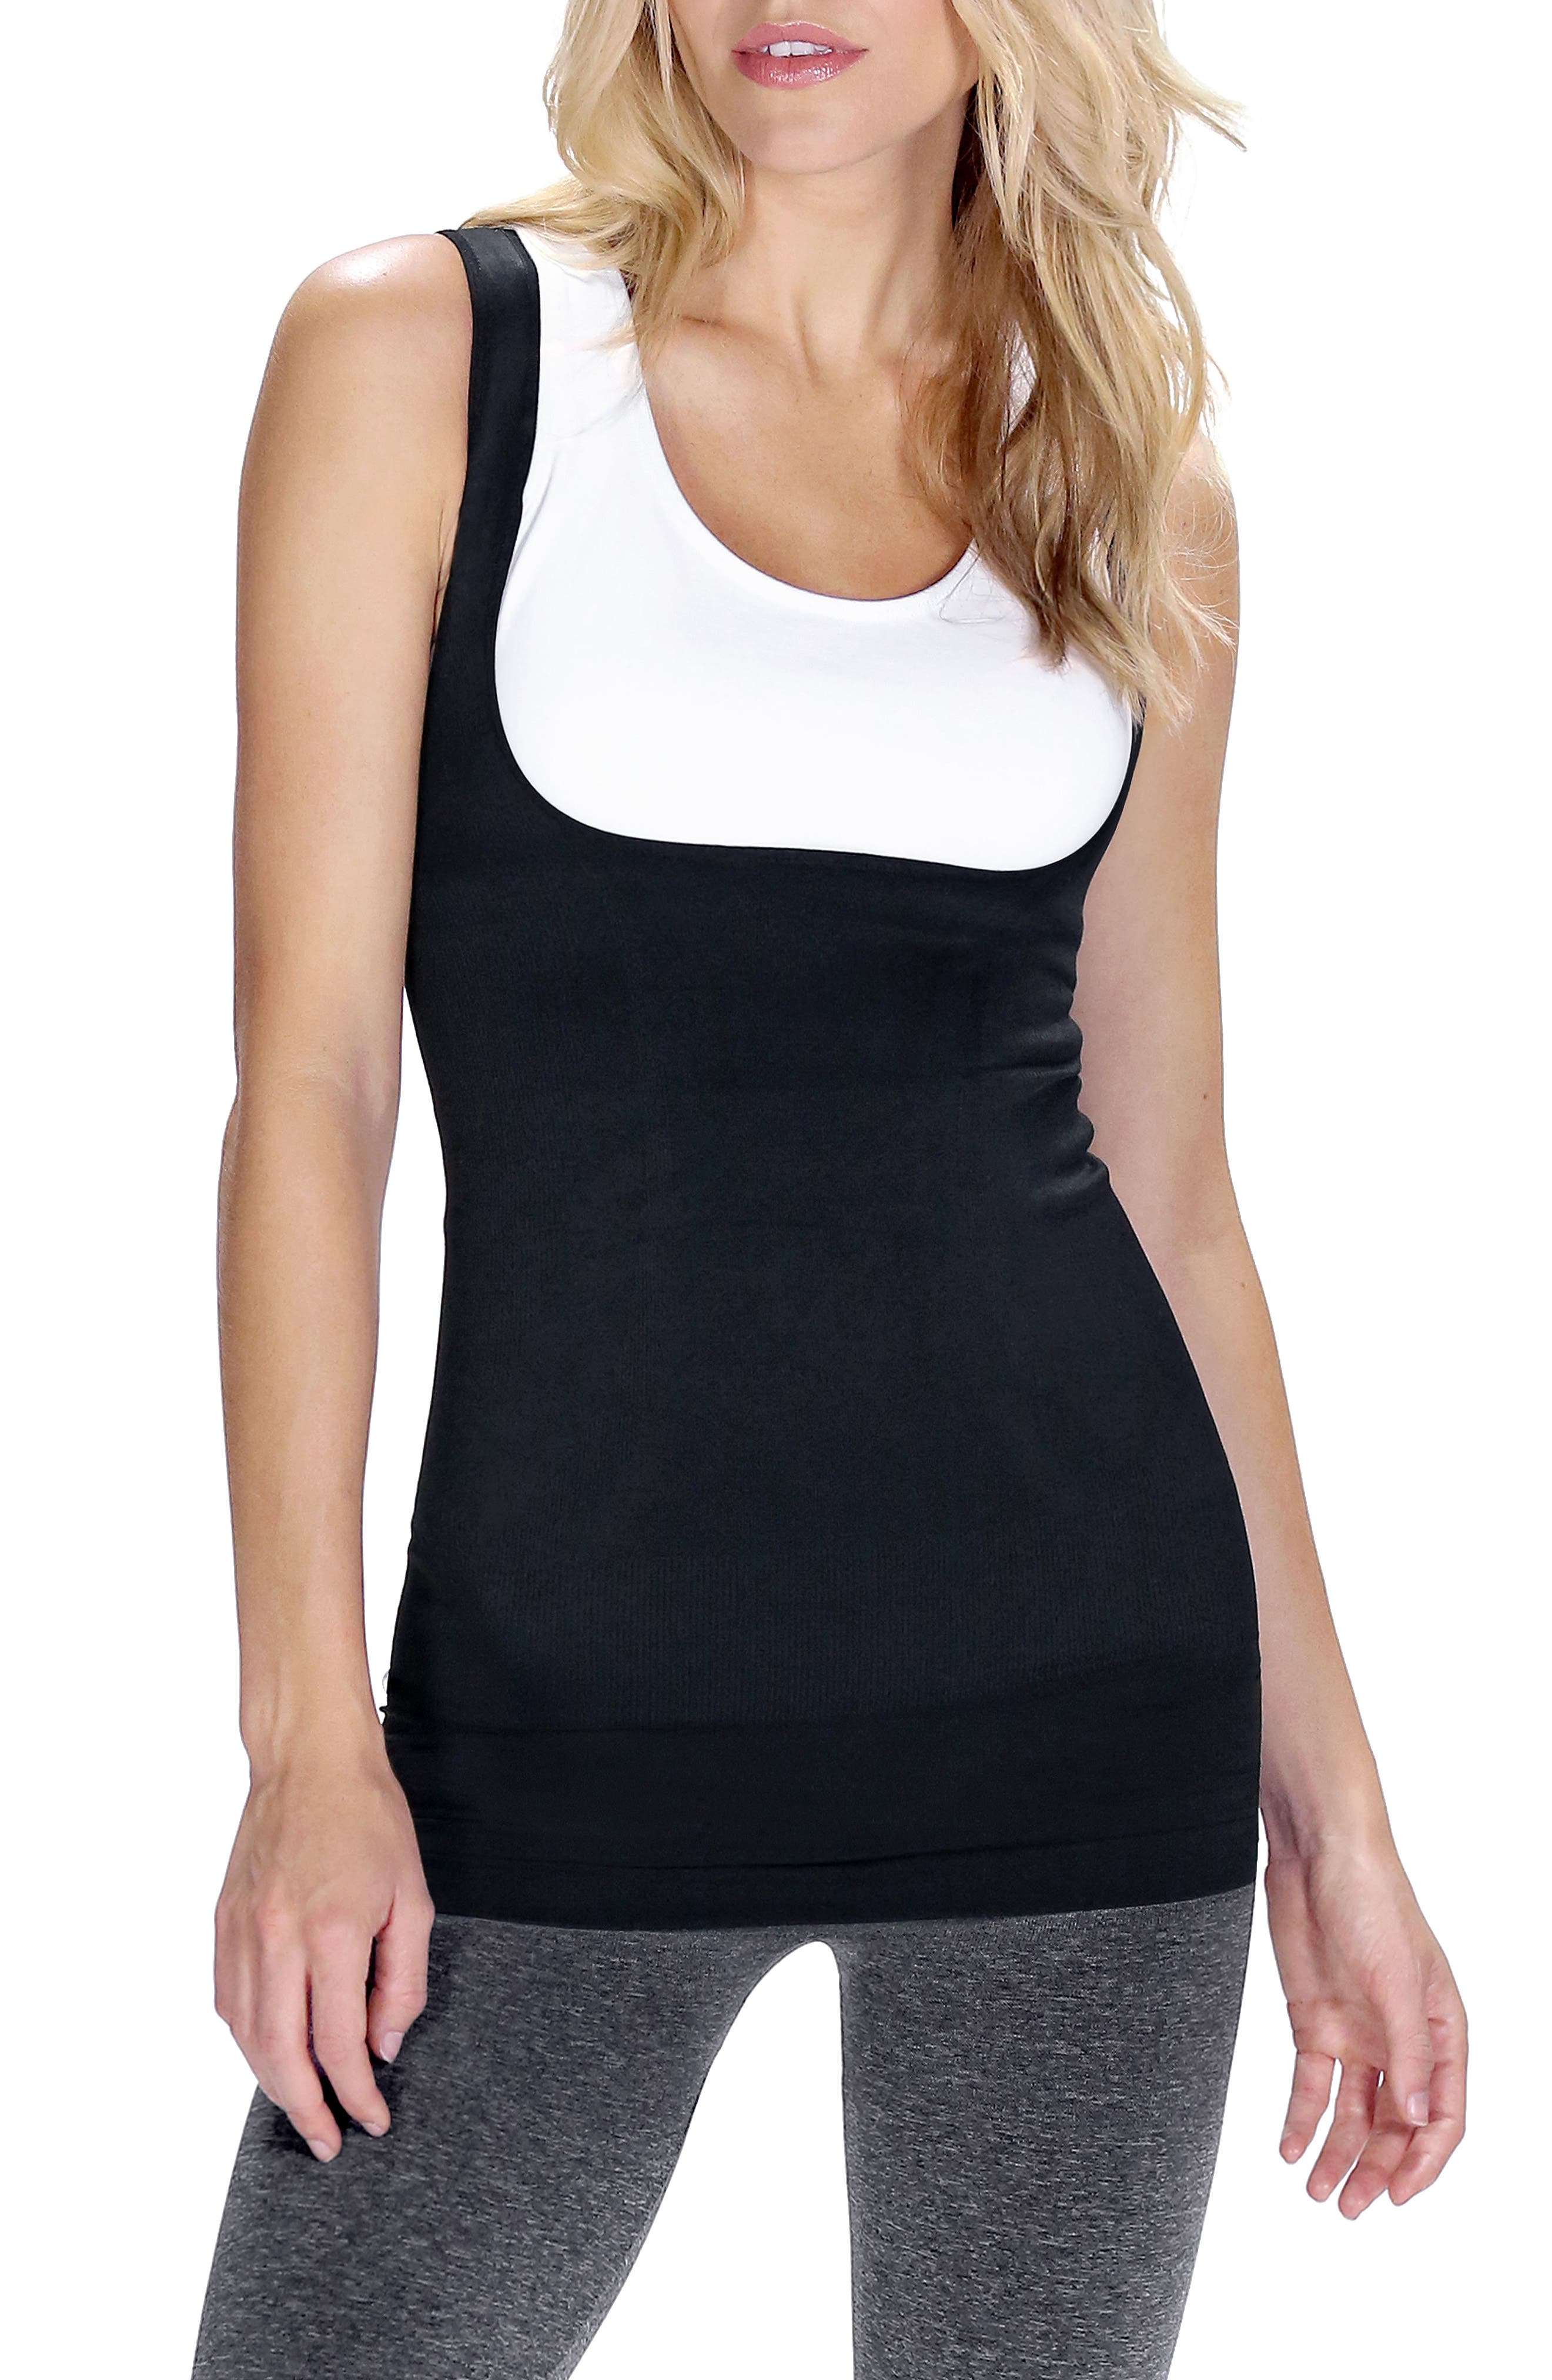 Everyday<sup>™</sup> Lift-Up Access Postpartum + Nursing Support Tank,                             Main thumbnail 1, color,                             DEEPEST BLACK